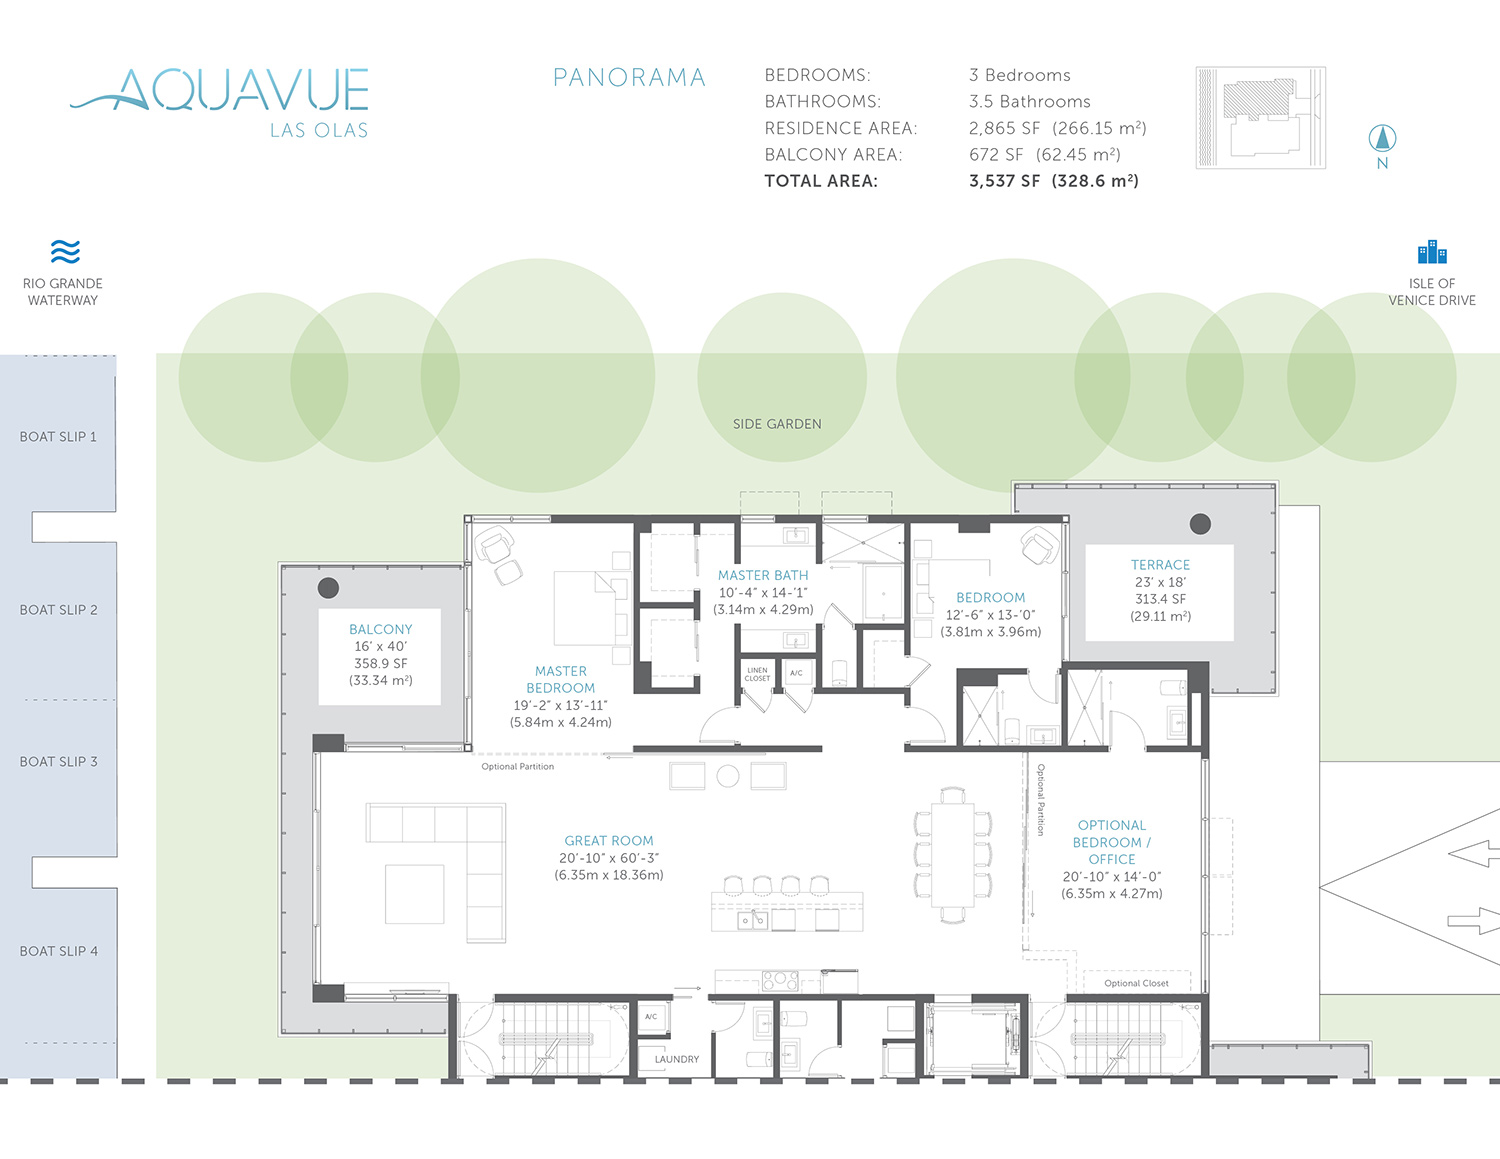 Aquavue Las Olas - Floorplan 1